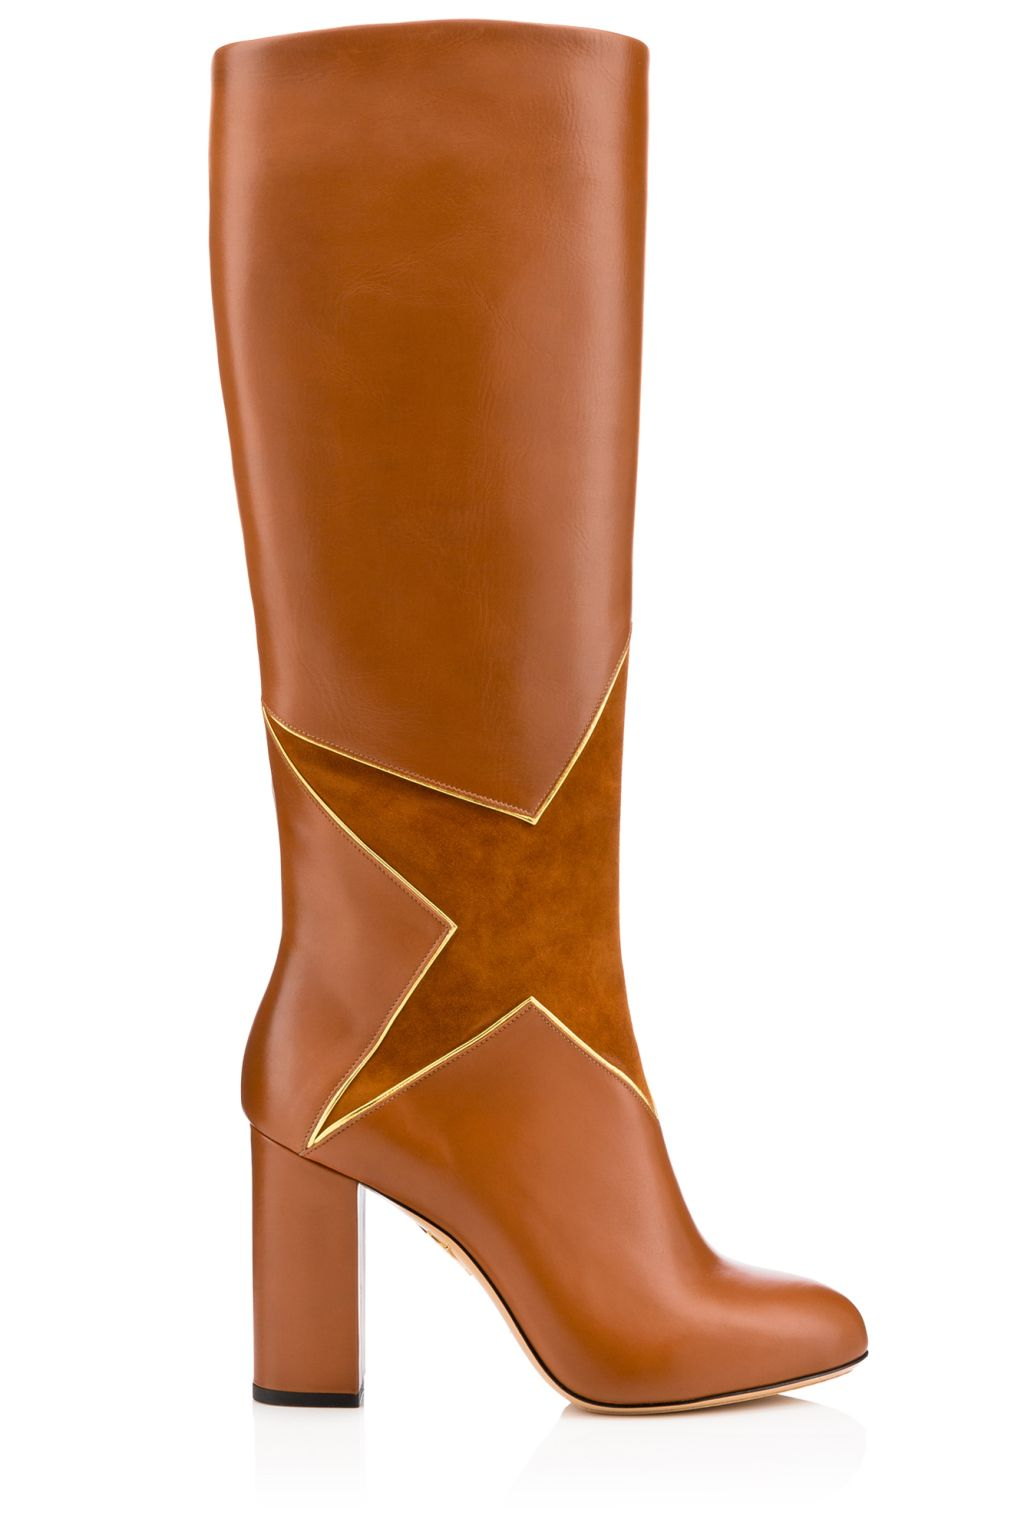 18a7b44a7853 The 30 Best Tall Boots of Fall 2016 | Fashion Trends | Boots, Tall ...